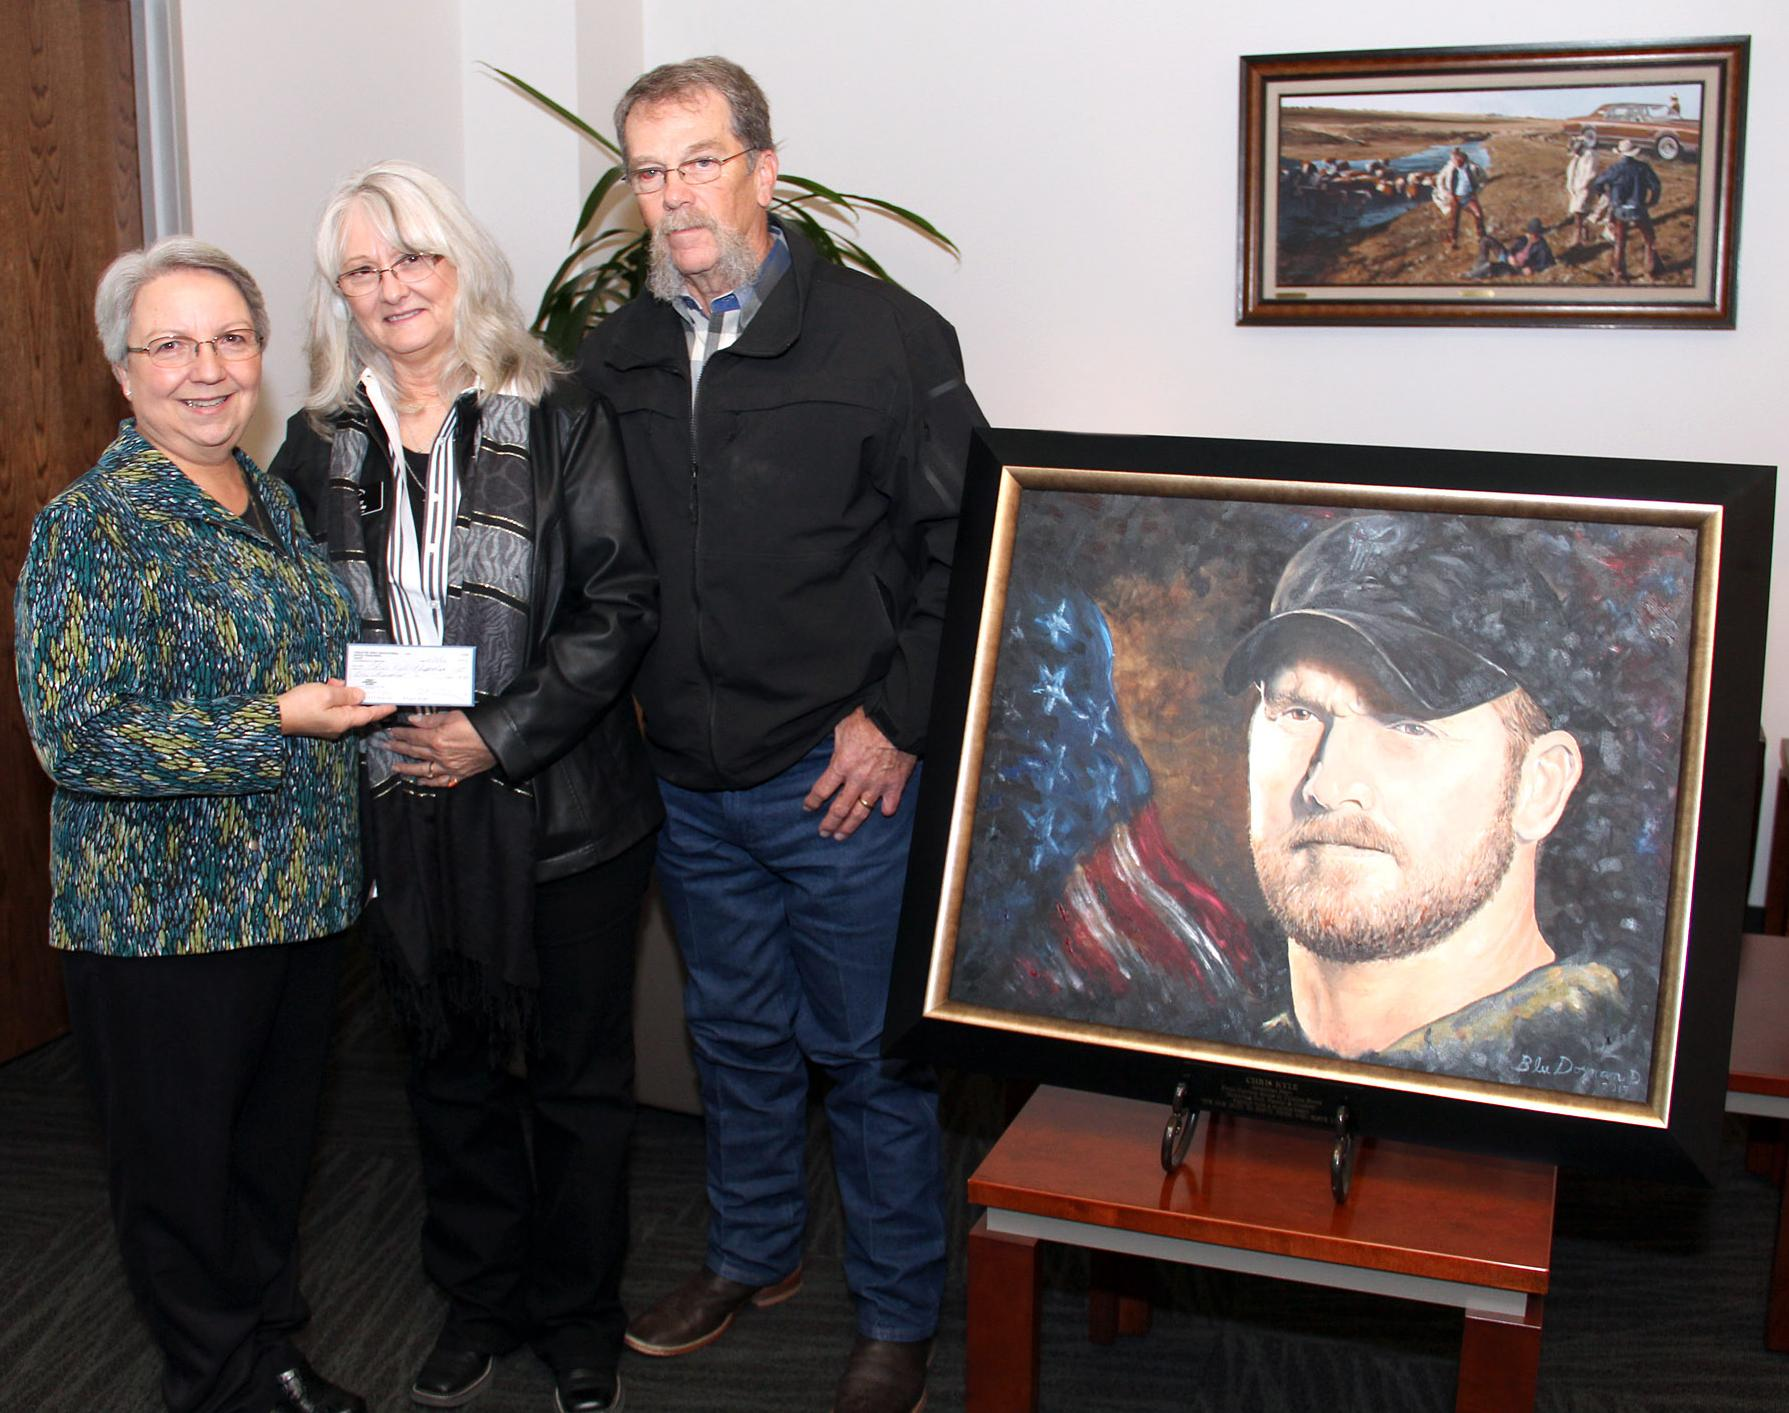 Chris Kyle Veterans Support Fund